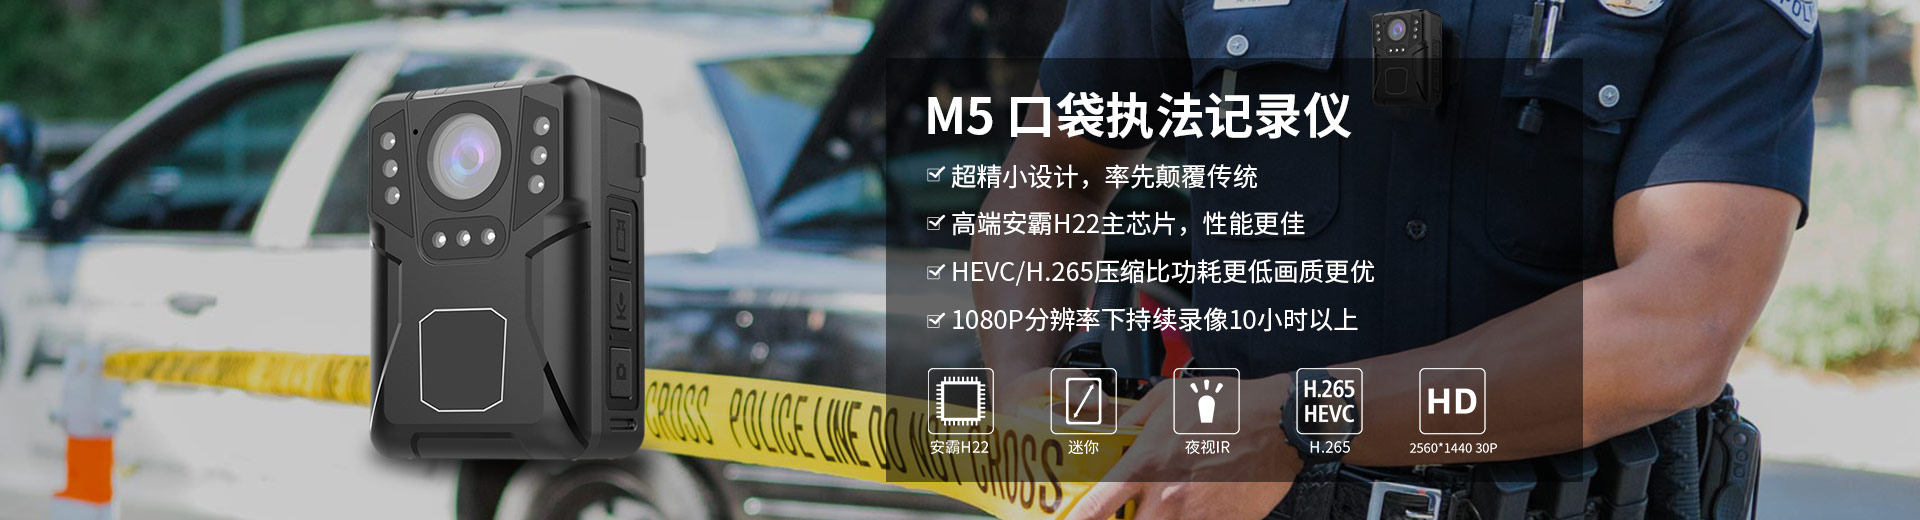 http://www.policecamera.cn/body-worn-camera/m5-super-mini-body-camera.html